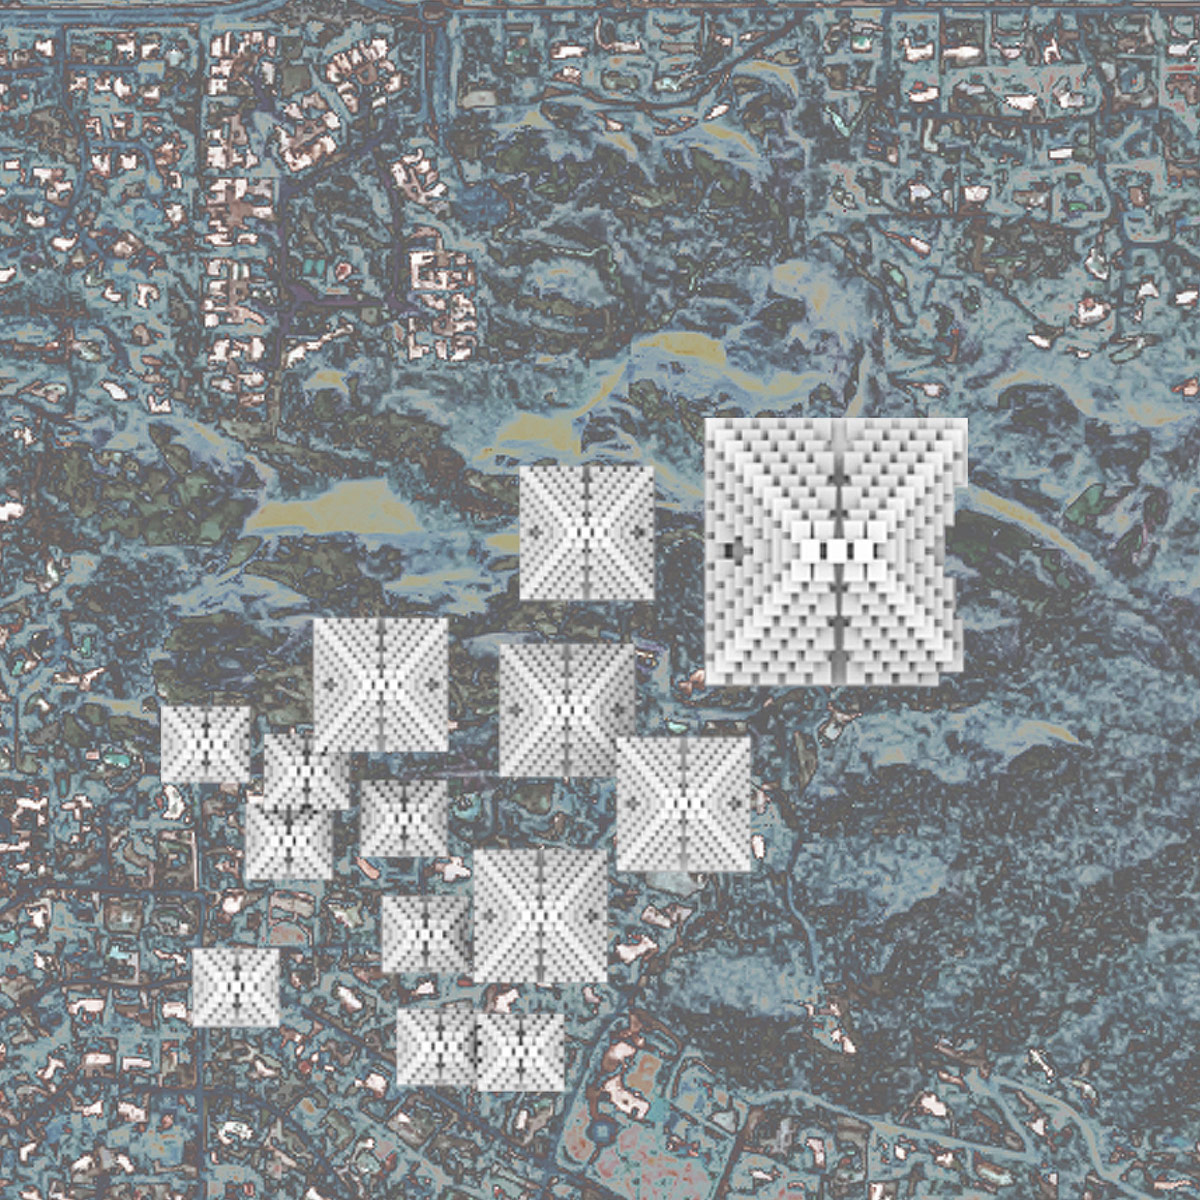 Urban plan showcasing modular housing masses merging with valleys of Phoenician mountains by student Lamarra Carter